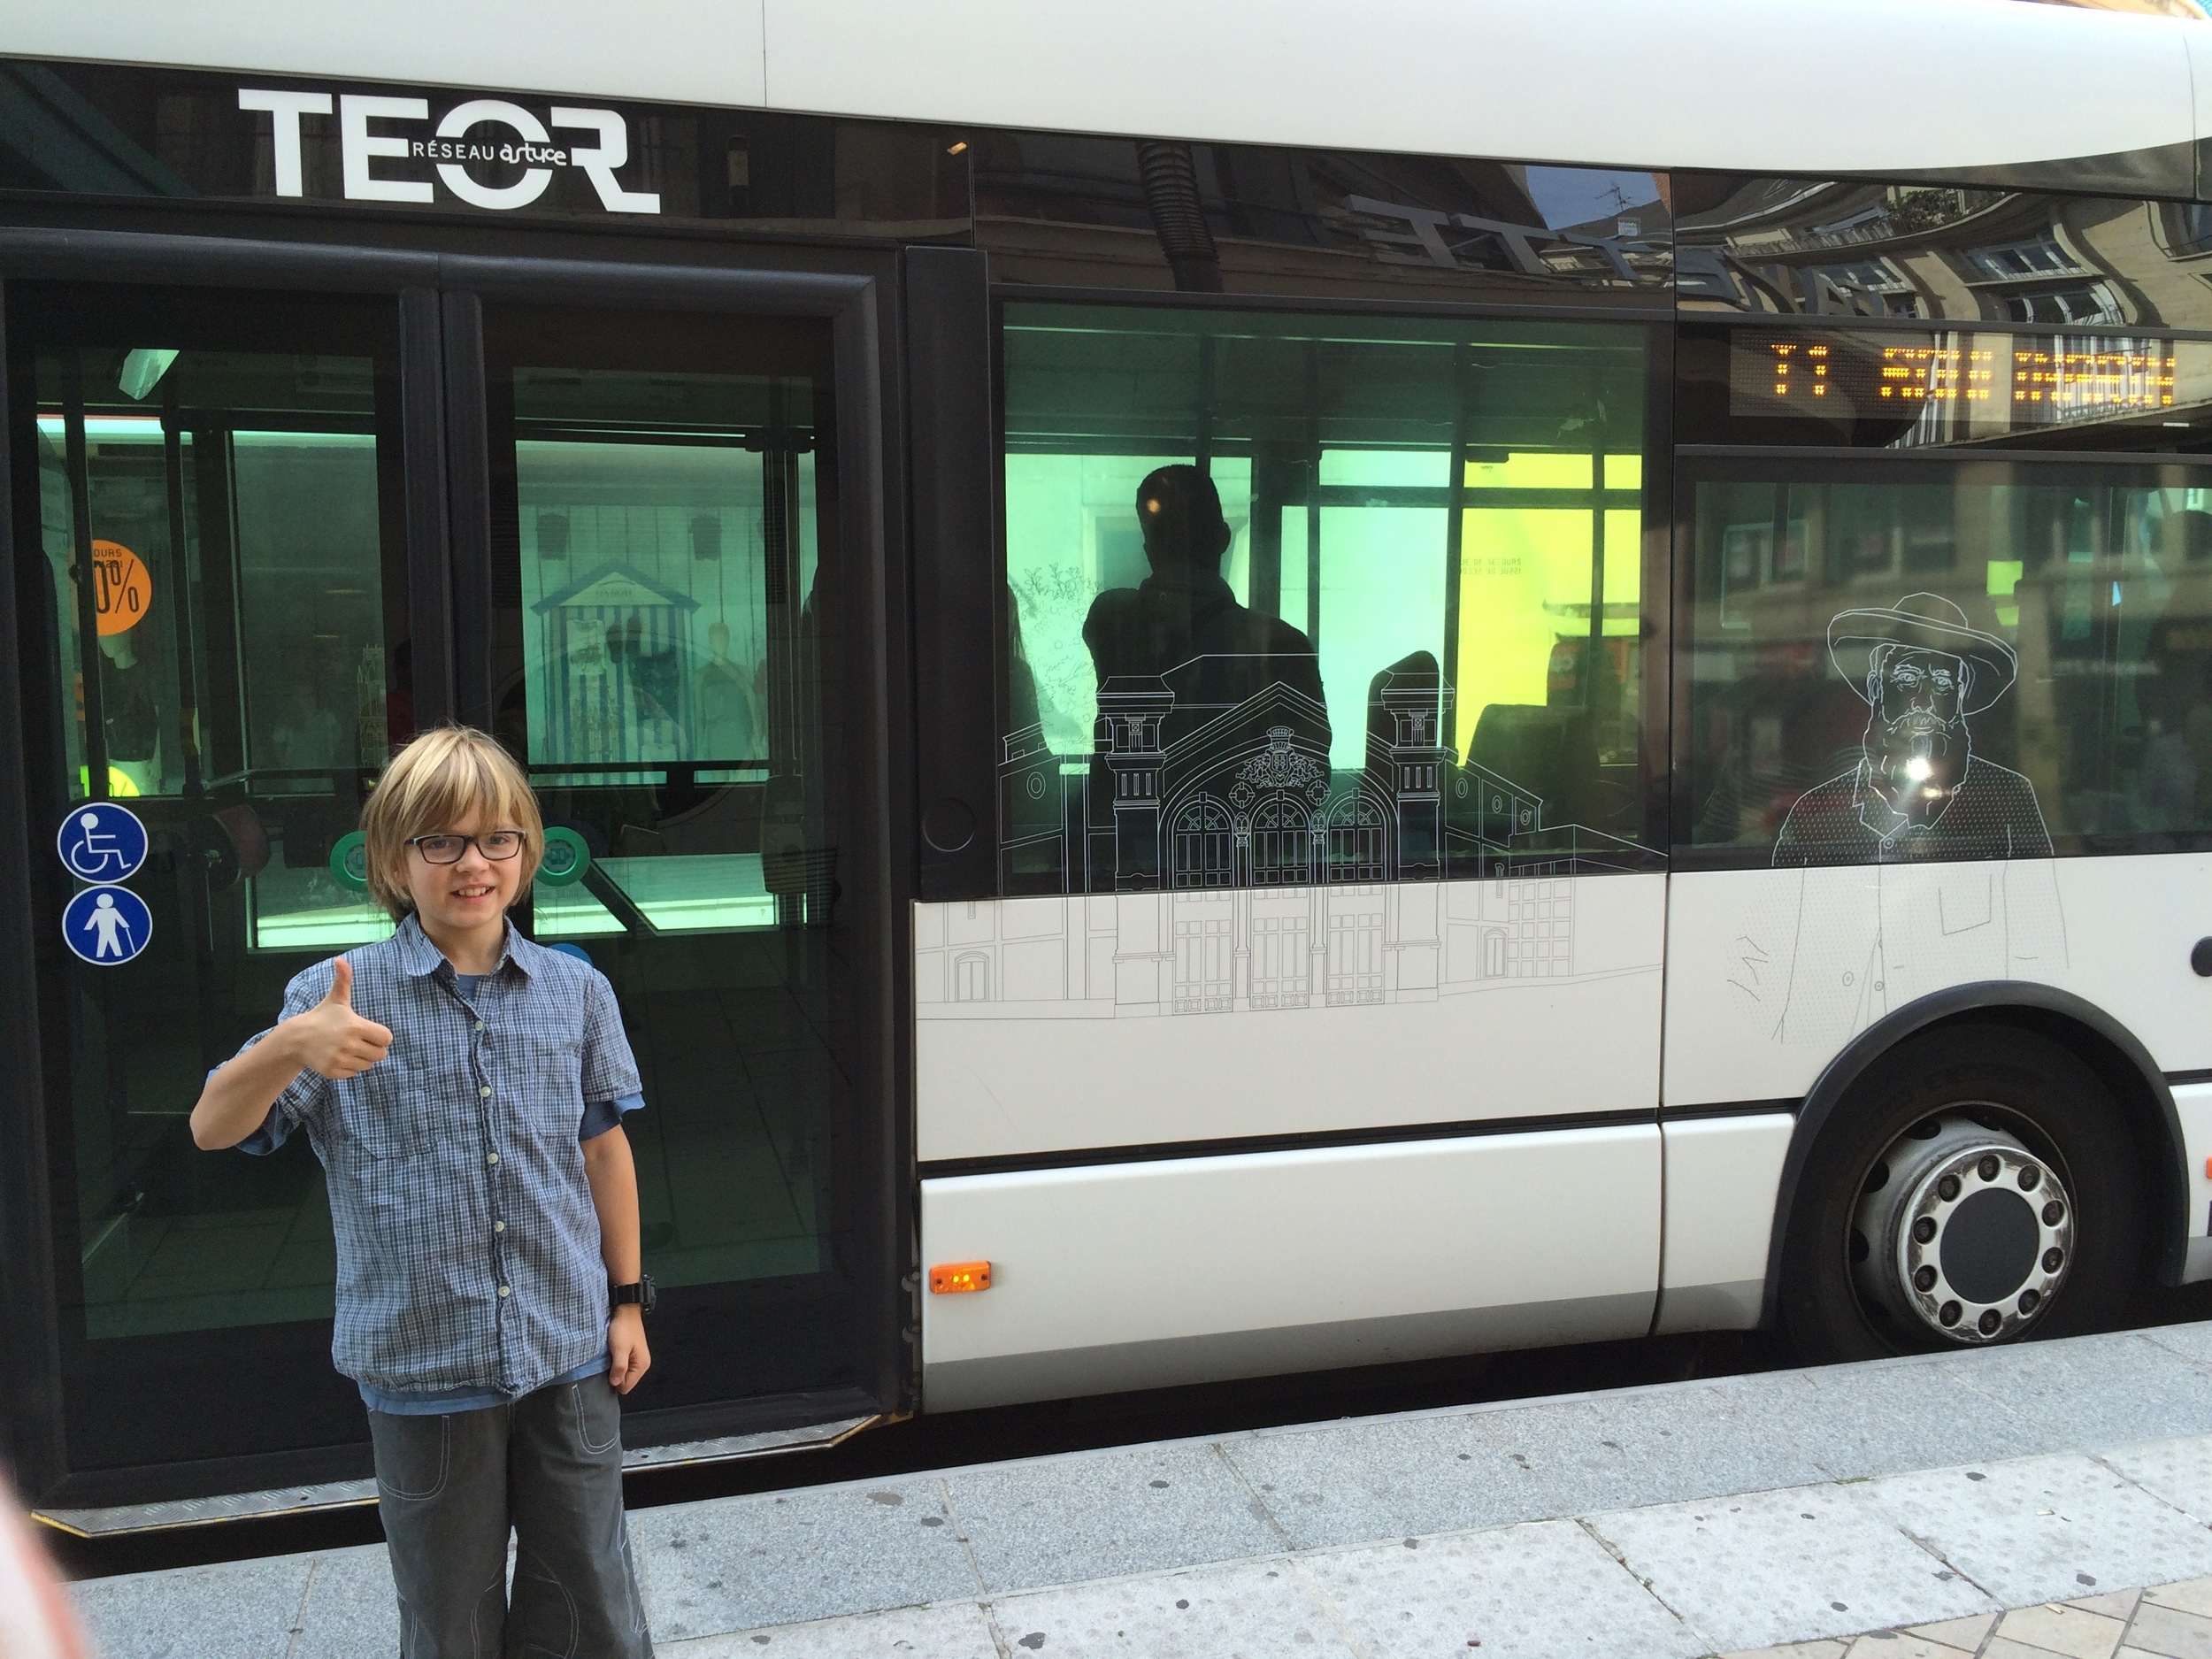 Elliot gives Rouen's TEOR Bus Rapid Transit the thumbs-up.